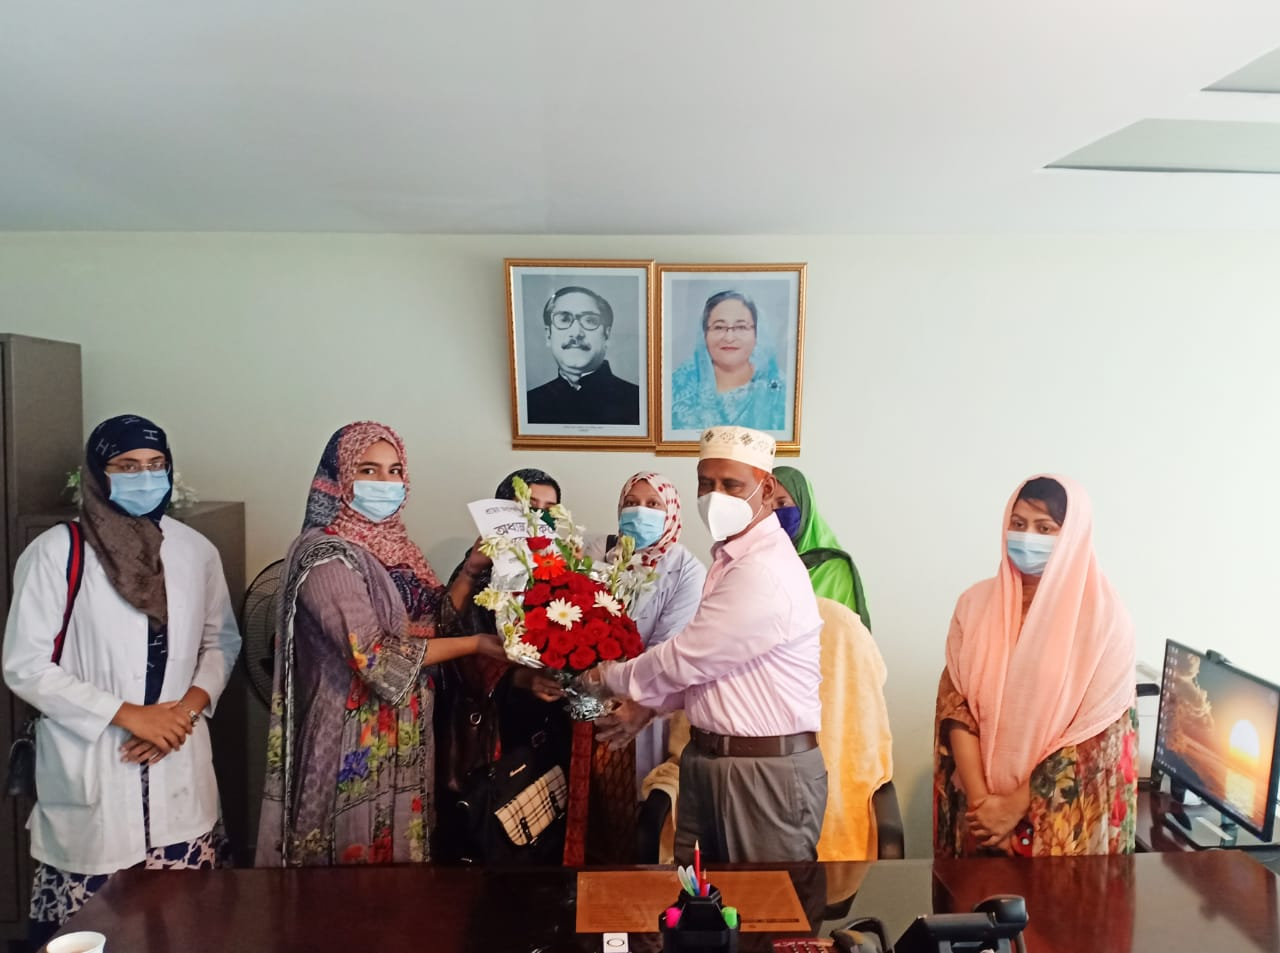 New Principal received flower bouquet from his fellow teachers